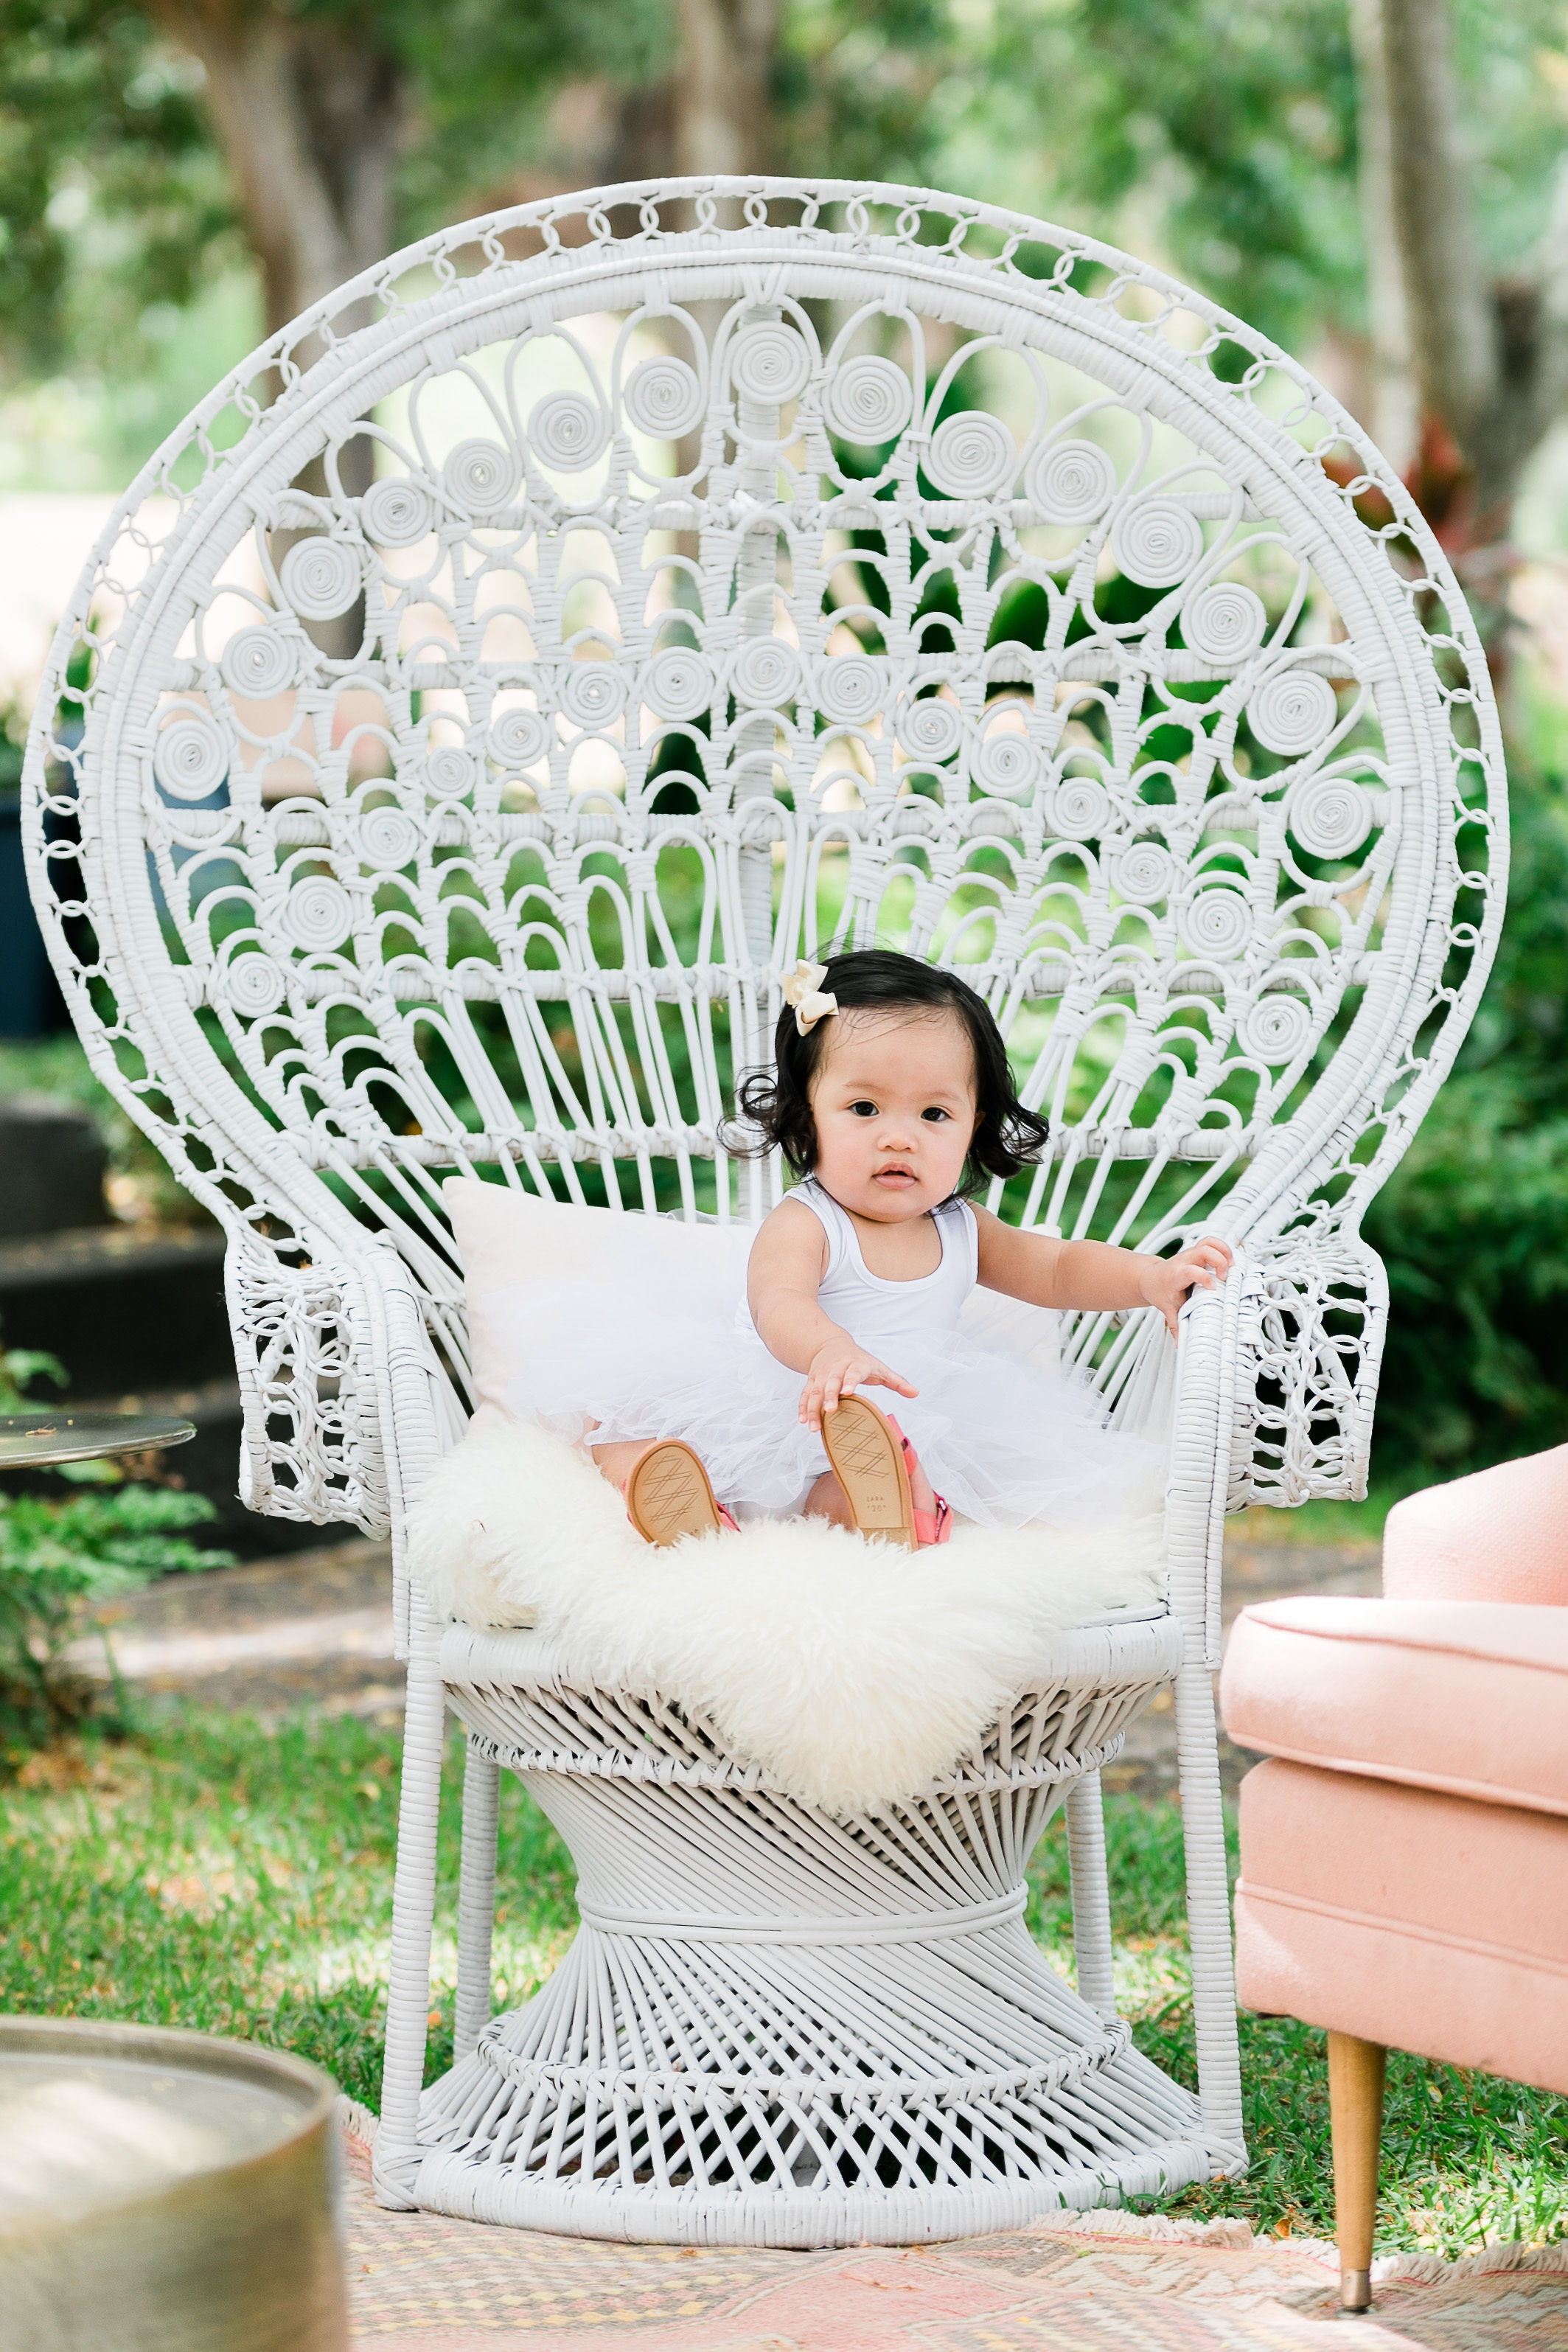 JamesRamosPhotography-LiviGrace_1stBirthday-21.jpg